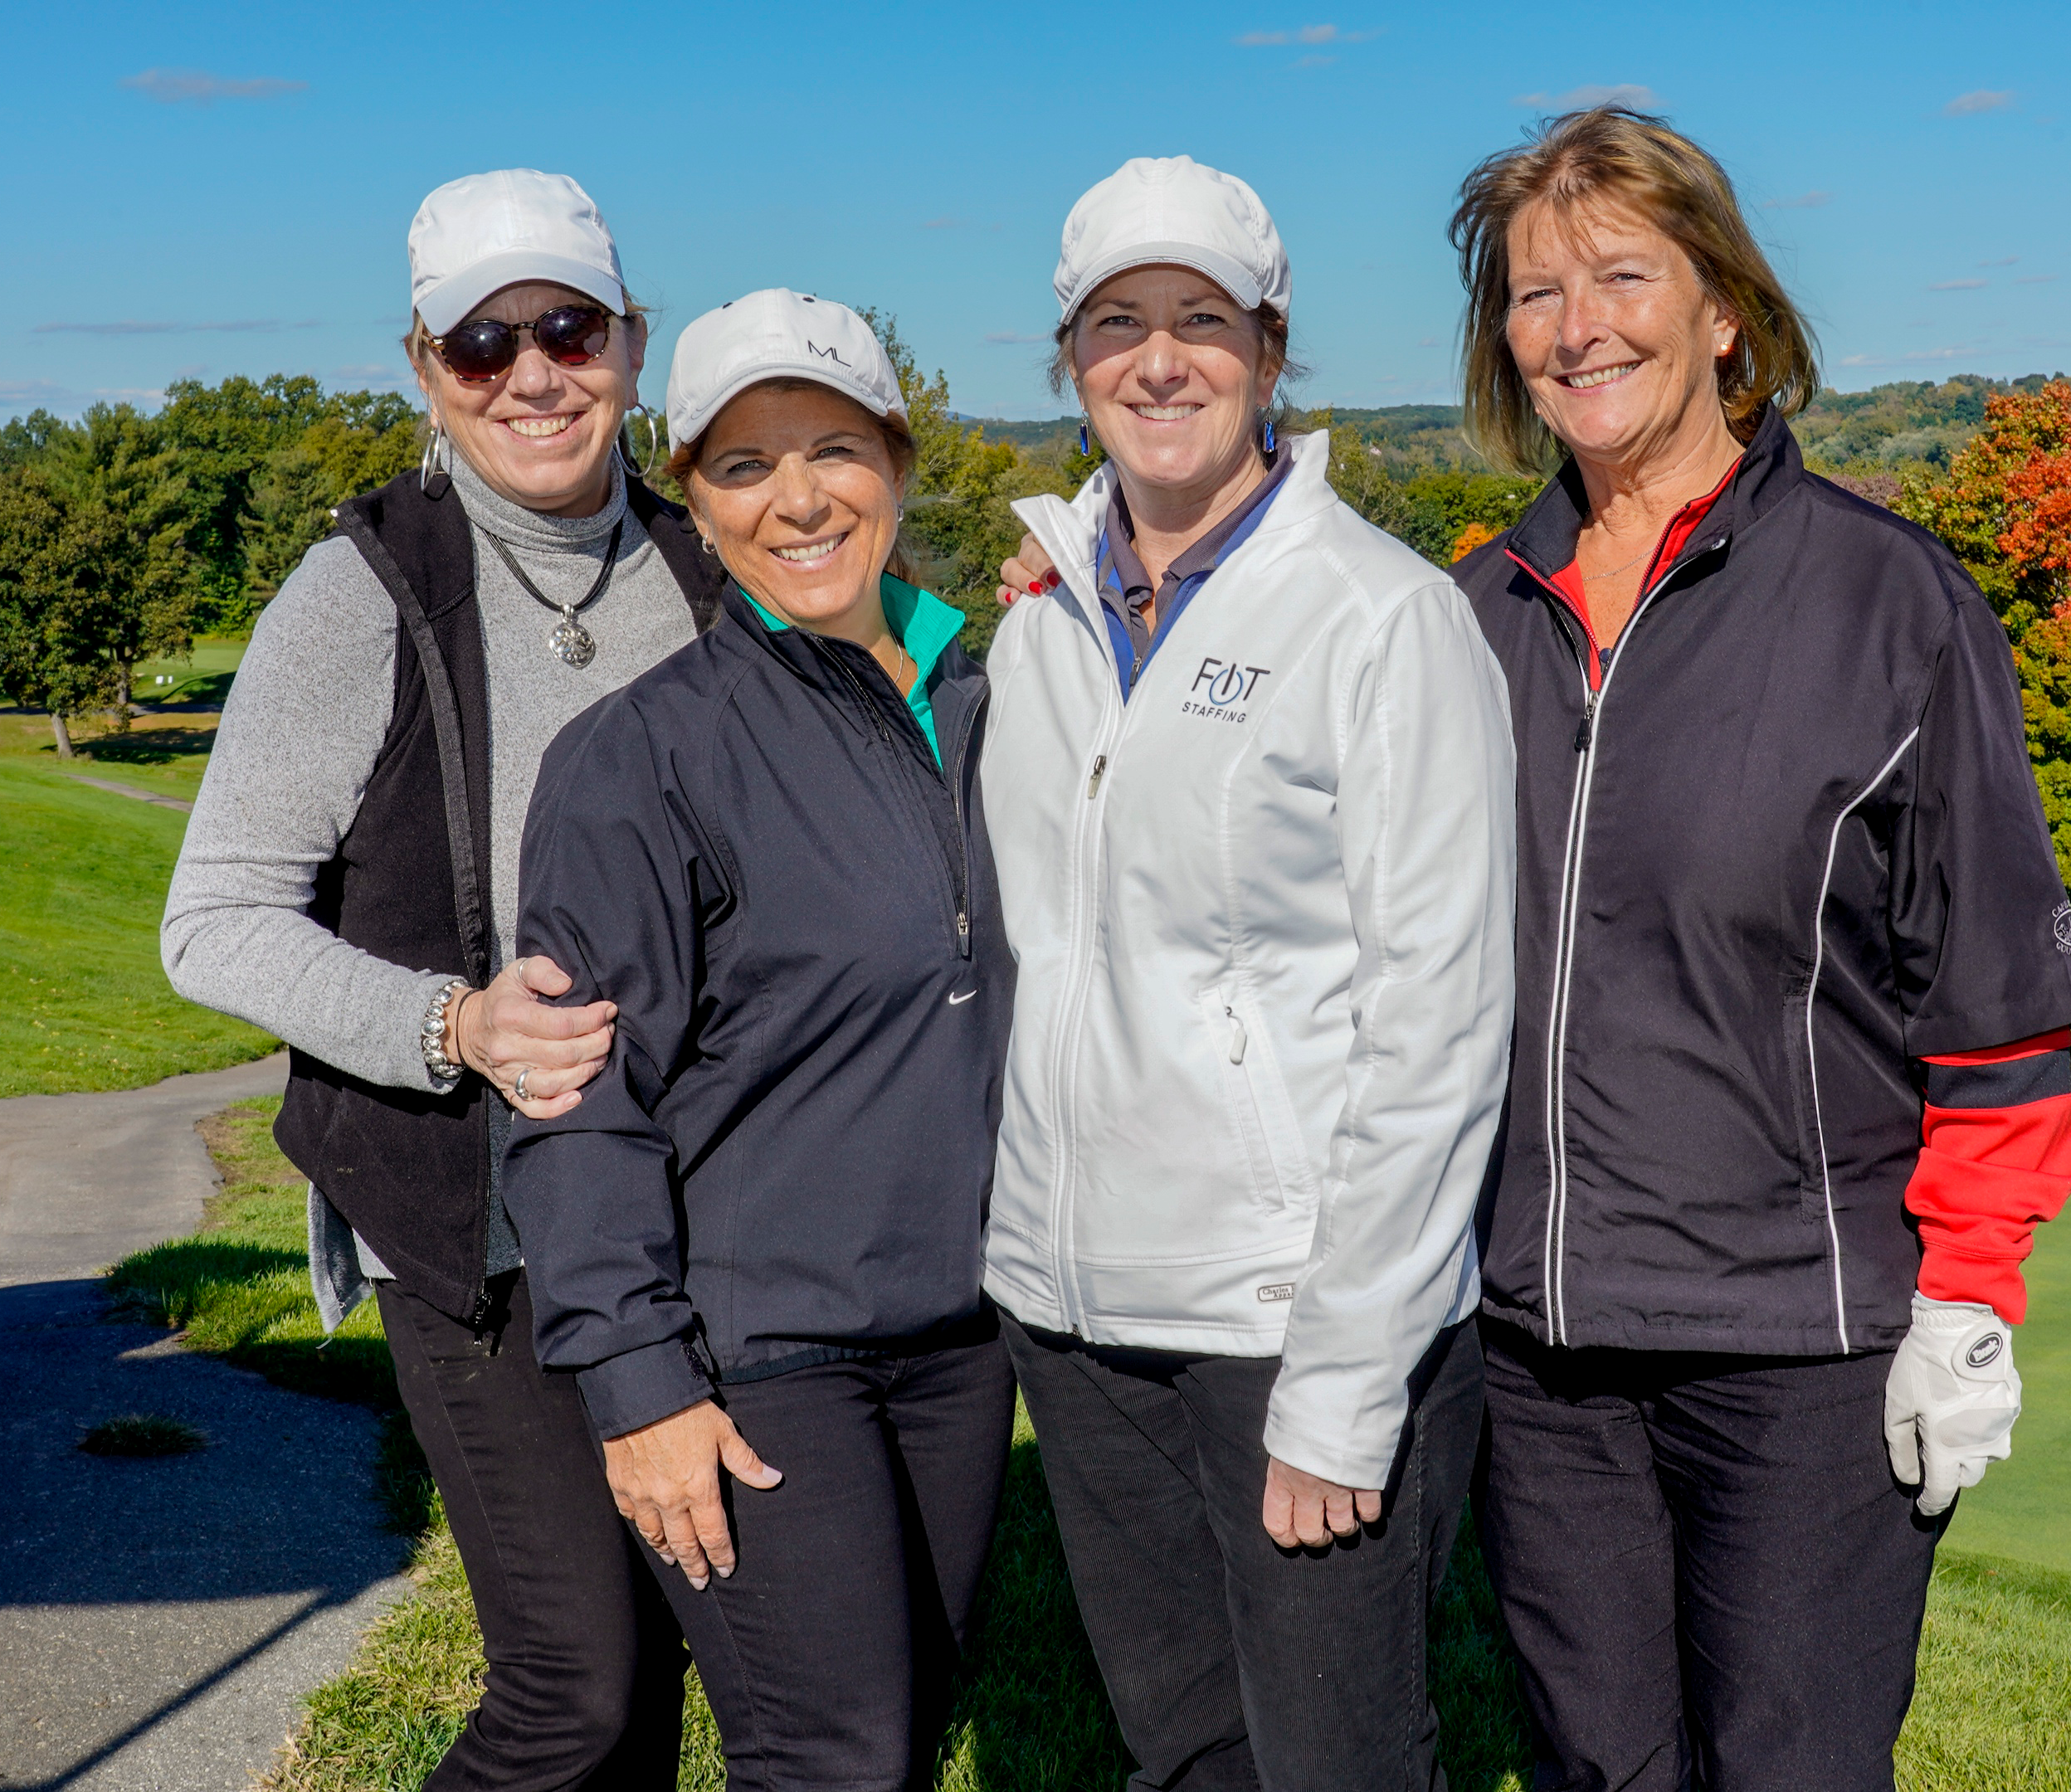 Four women stand, smiling, on a golf green.